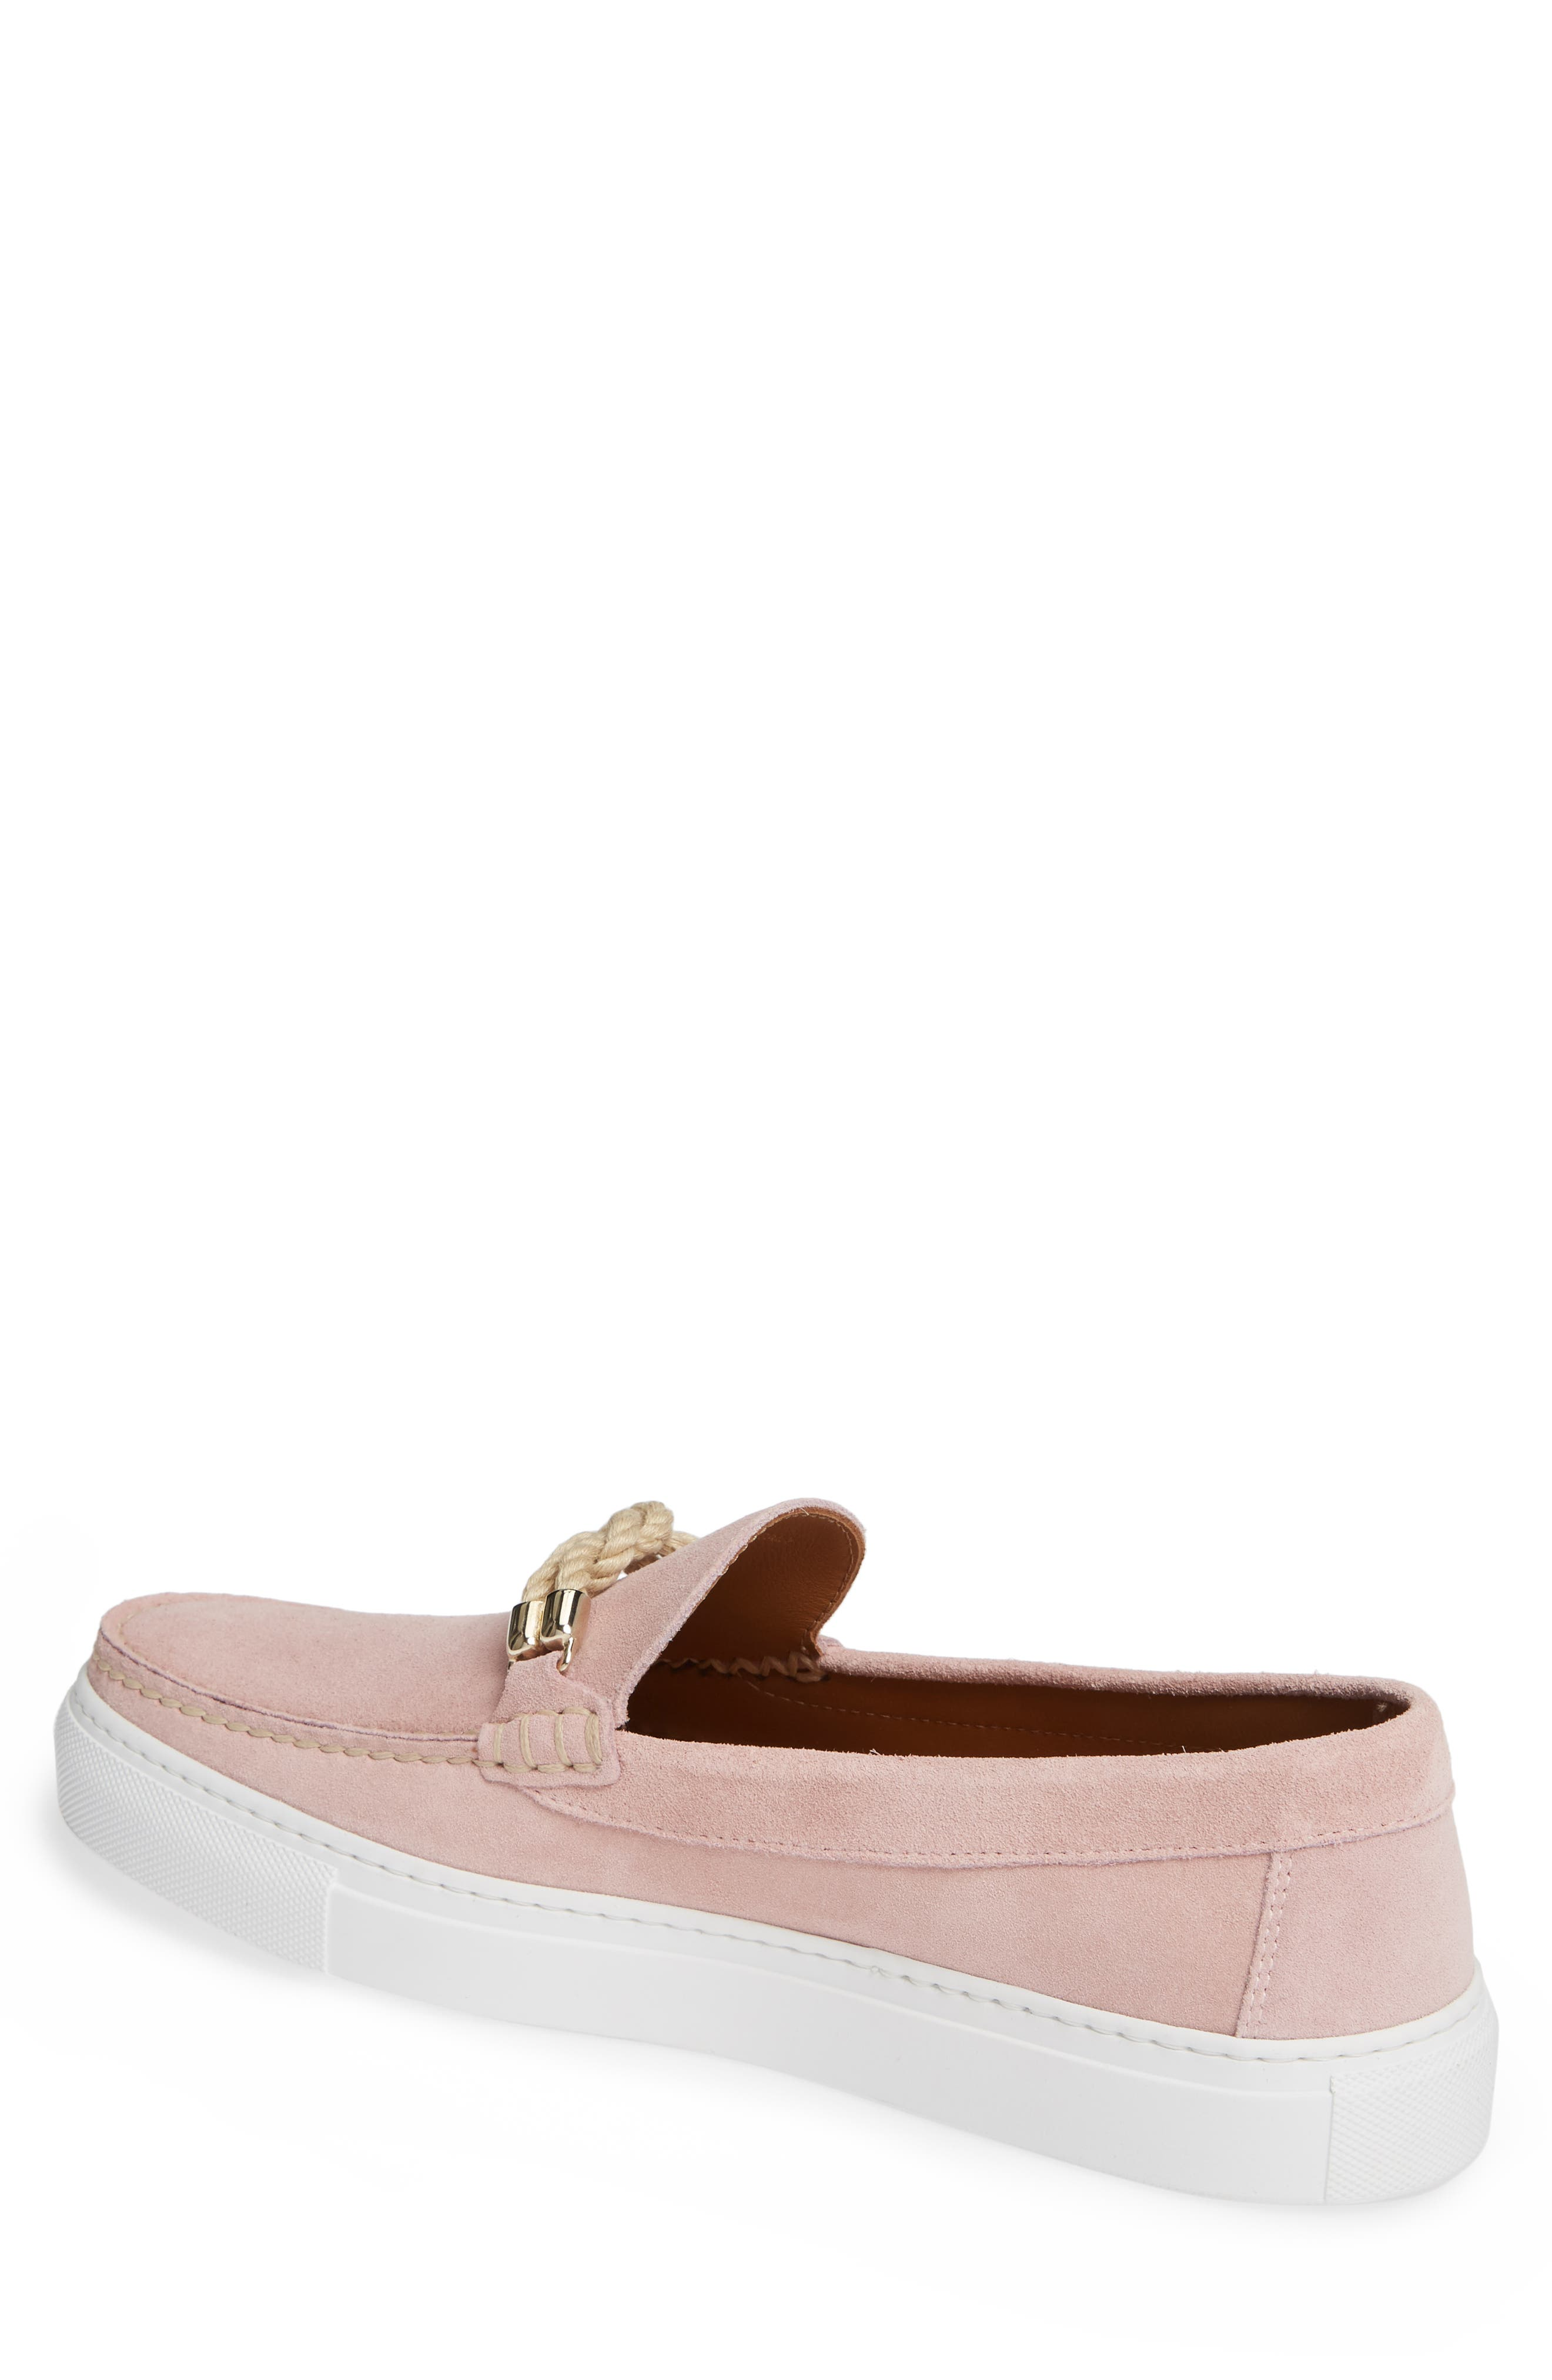 Britton Square Knot Loafer,                             Alternate thumbnail 2, color,                             ROSE SUEDE